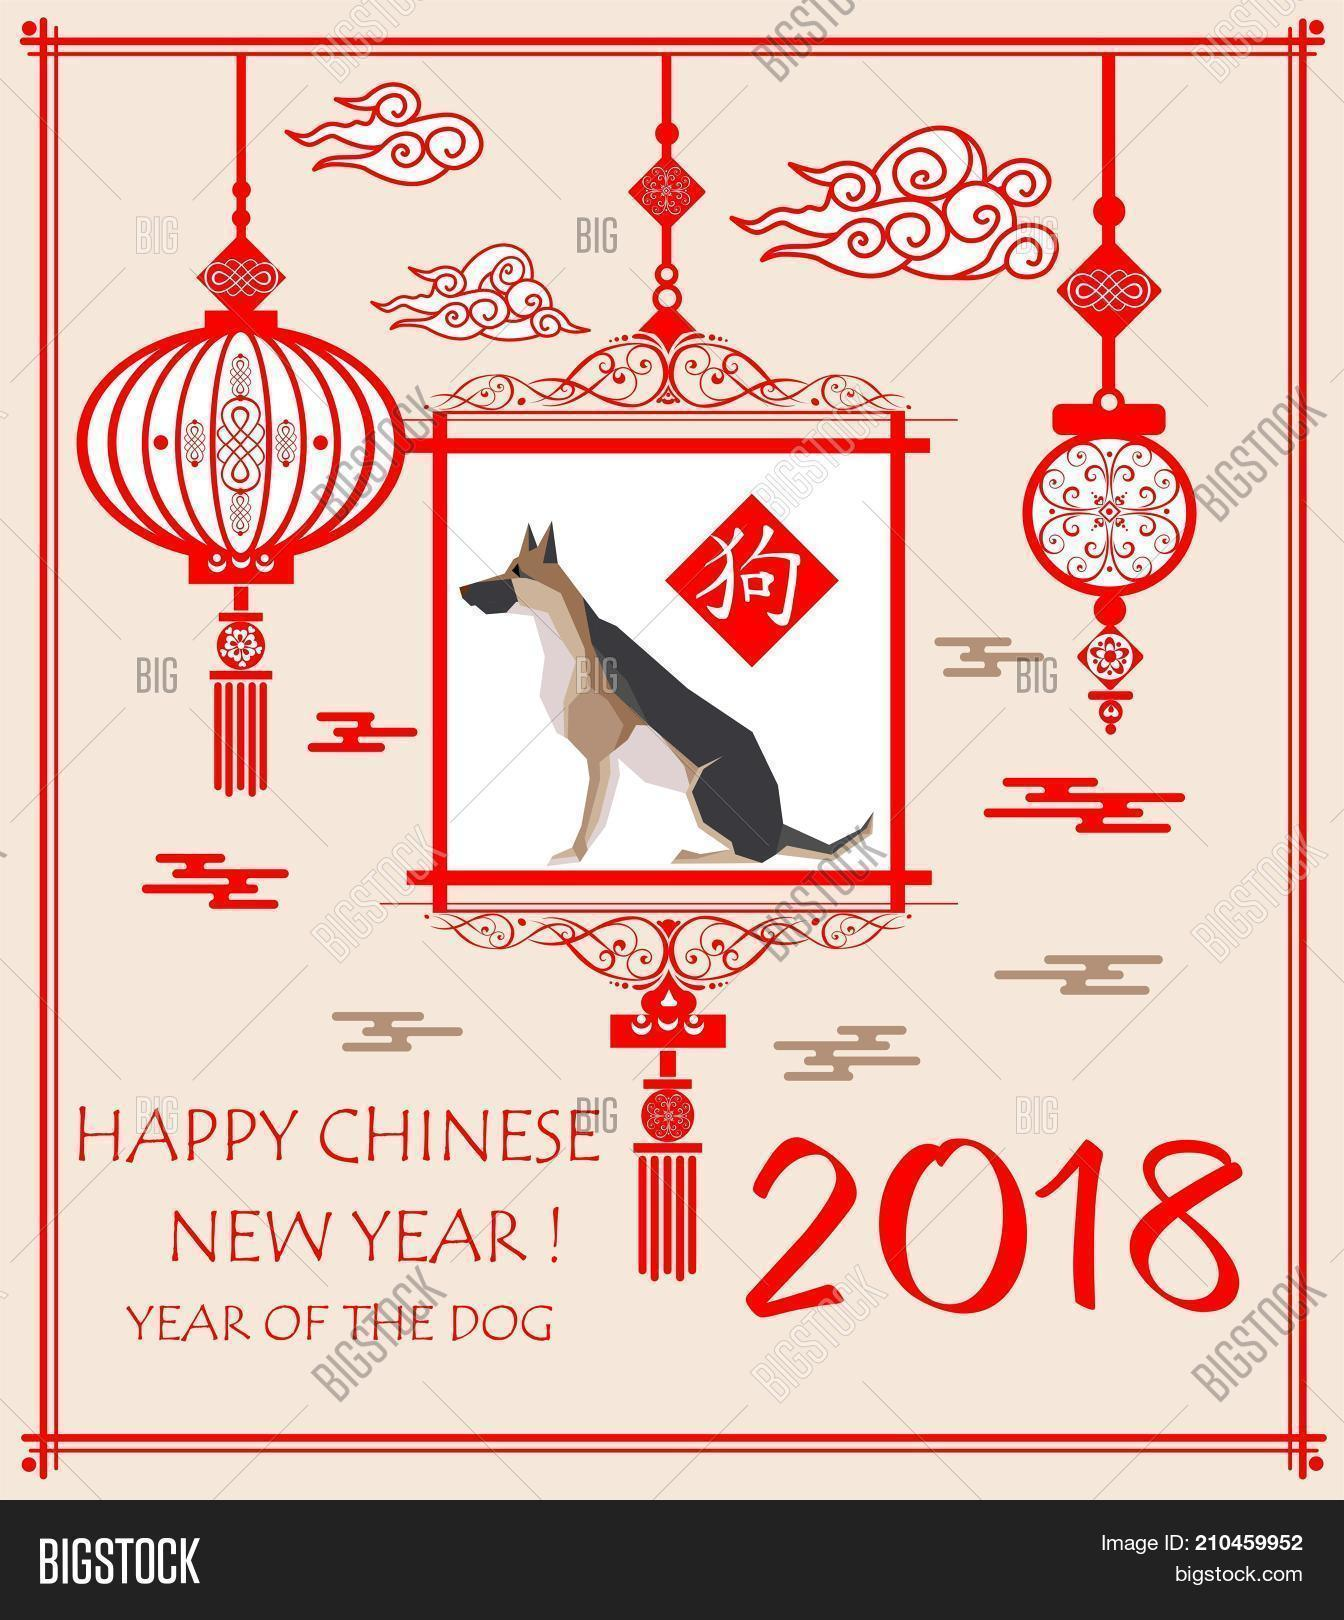 Greeting card chinese image photo free trial bigstock greeting card for chinese new year 2018 with german shepherd hanging chinese lantern and hieroglyph m4hsunfo